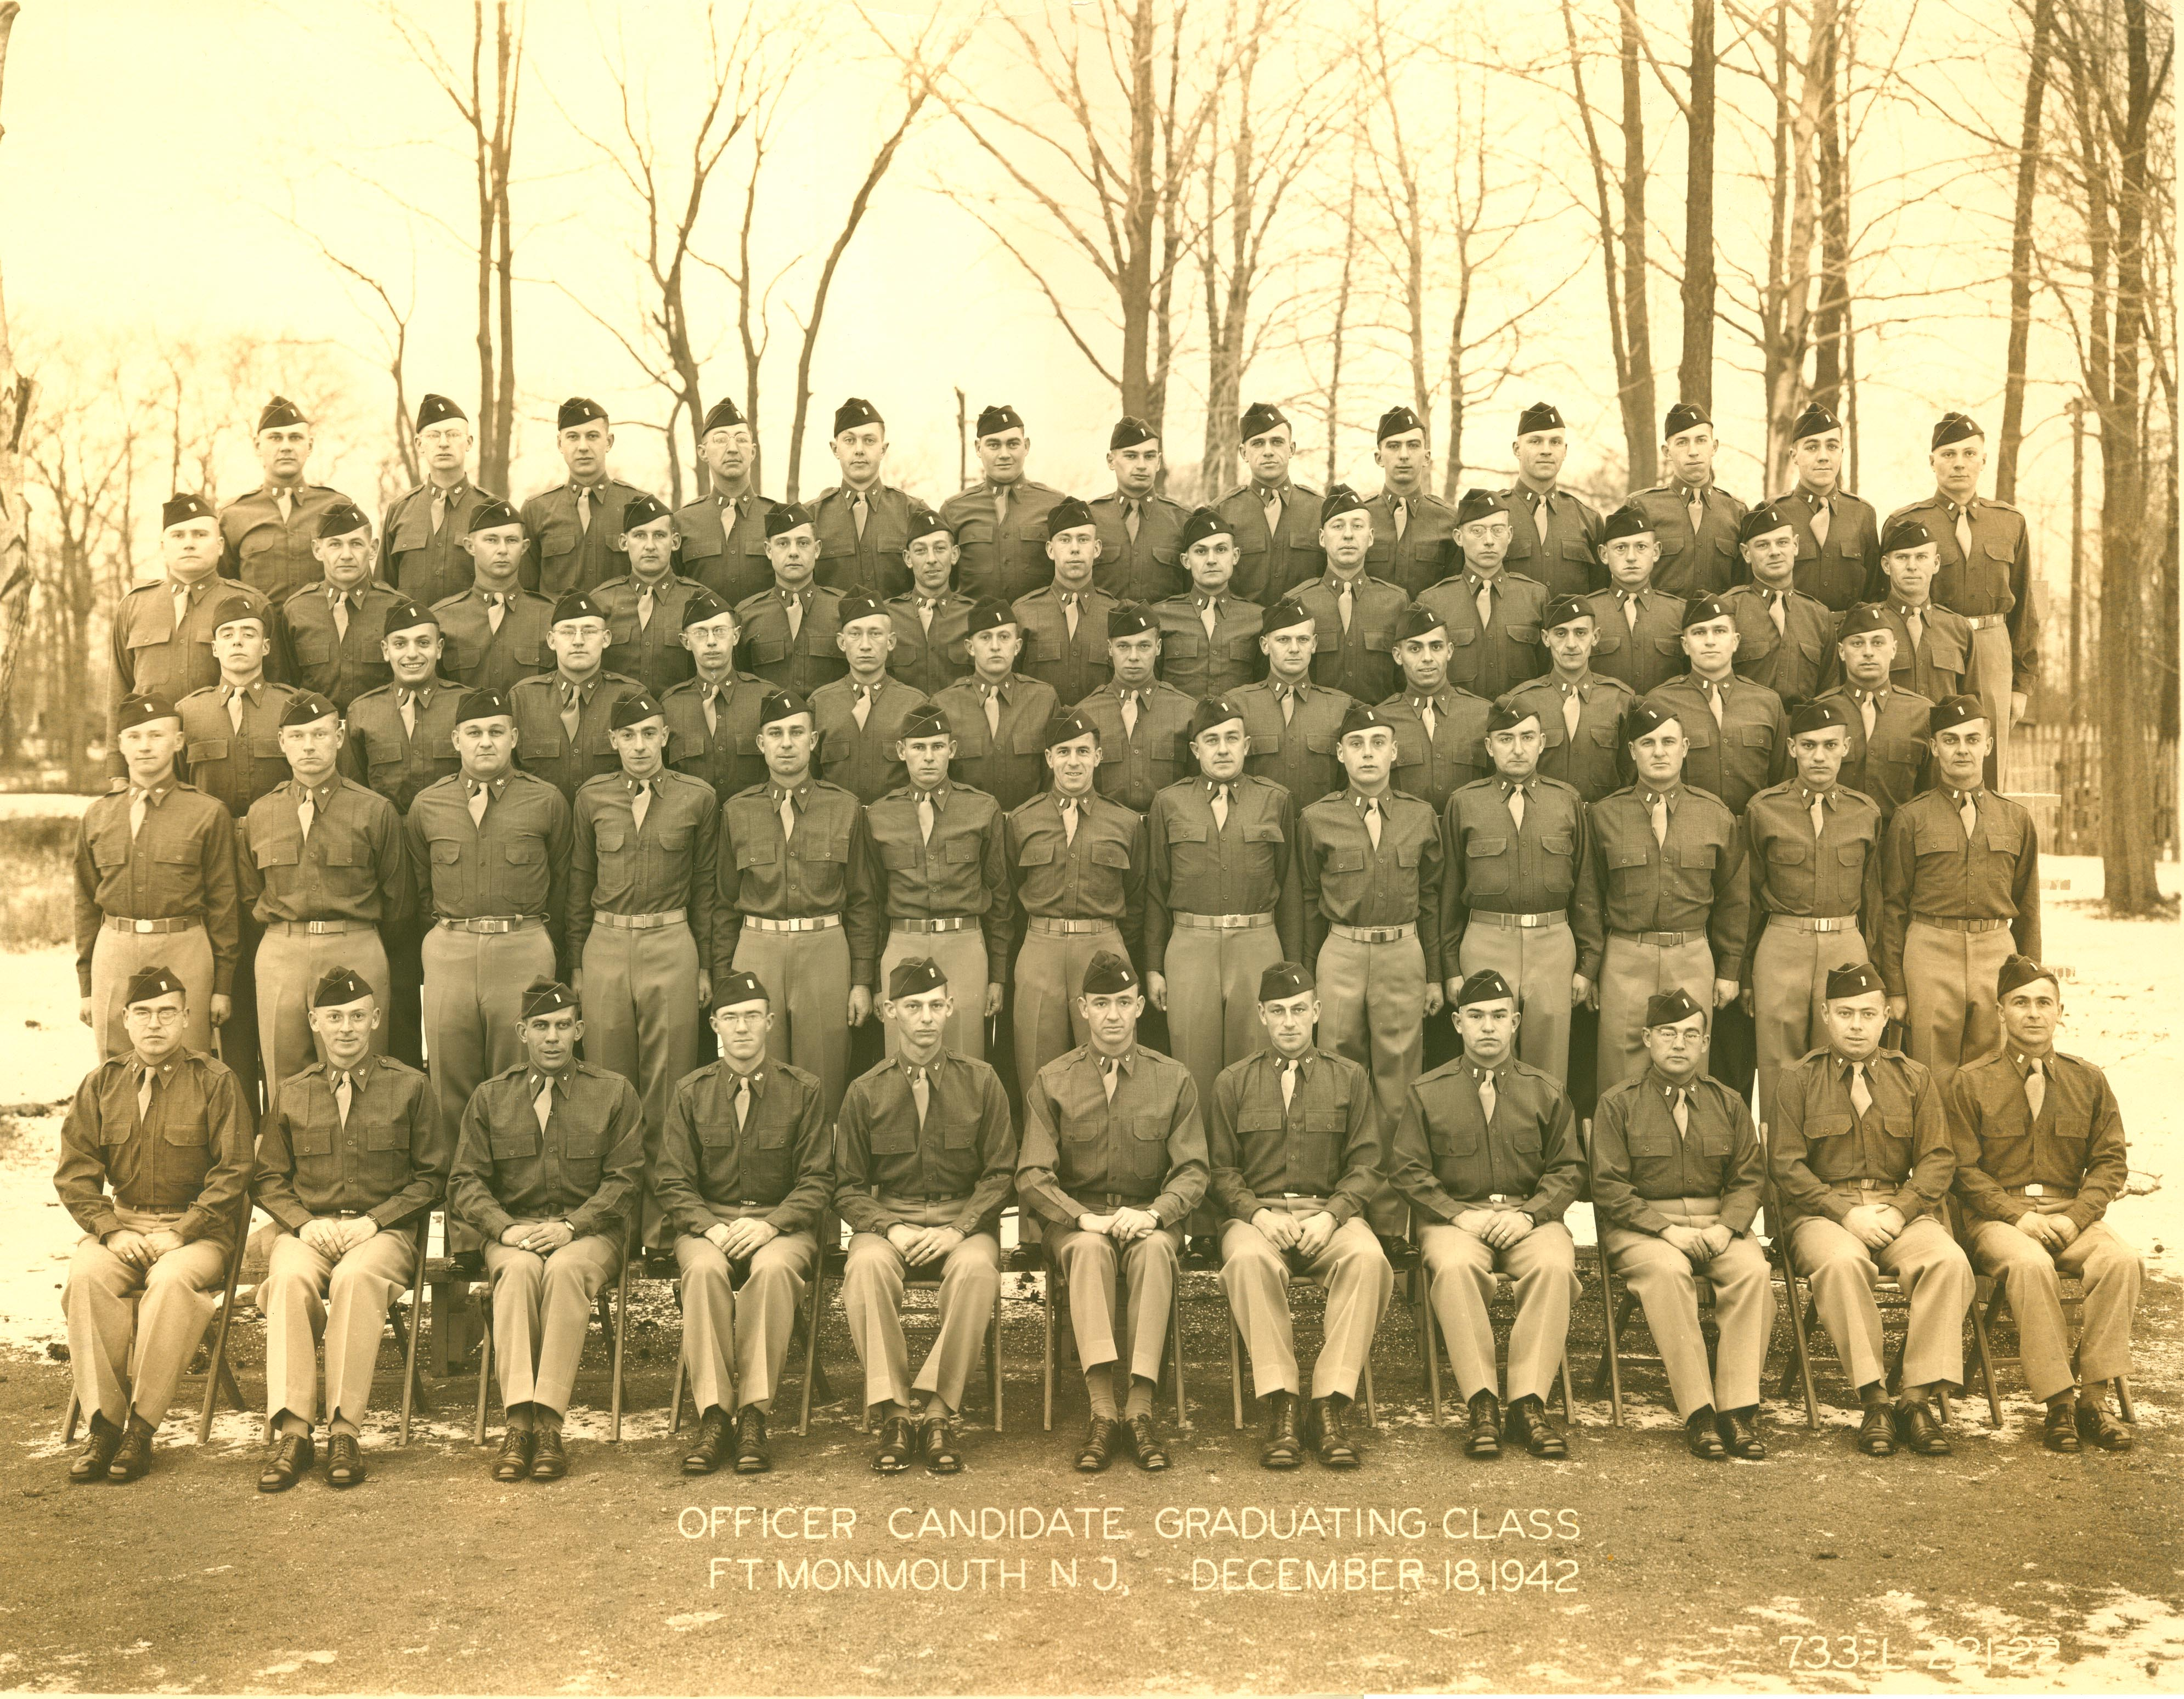 Quartermaster Uniforms Ww2 File:1942-signa...